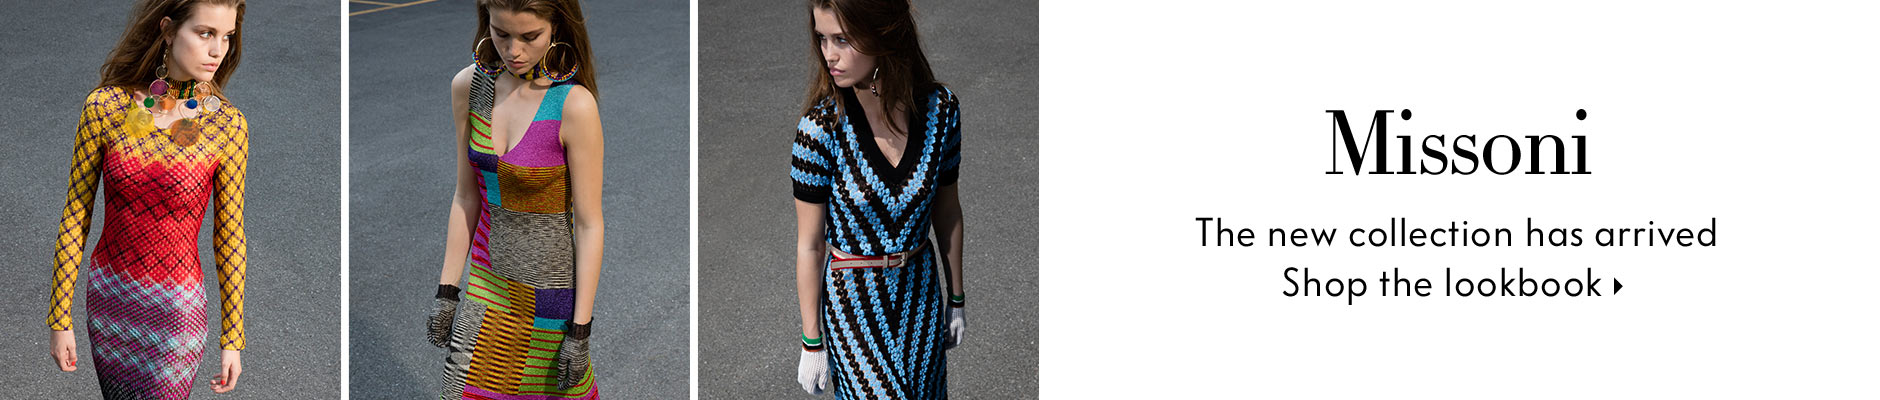 Missoni Lookbook